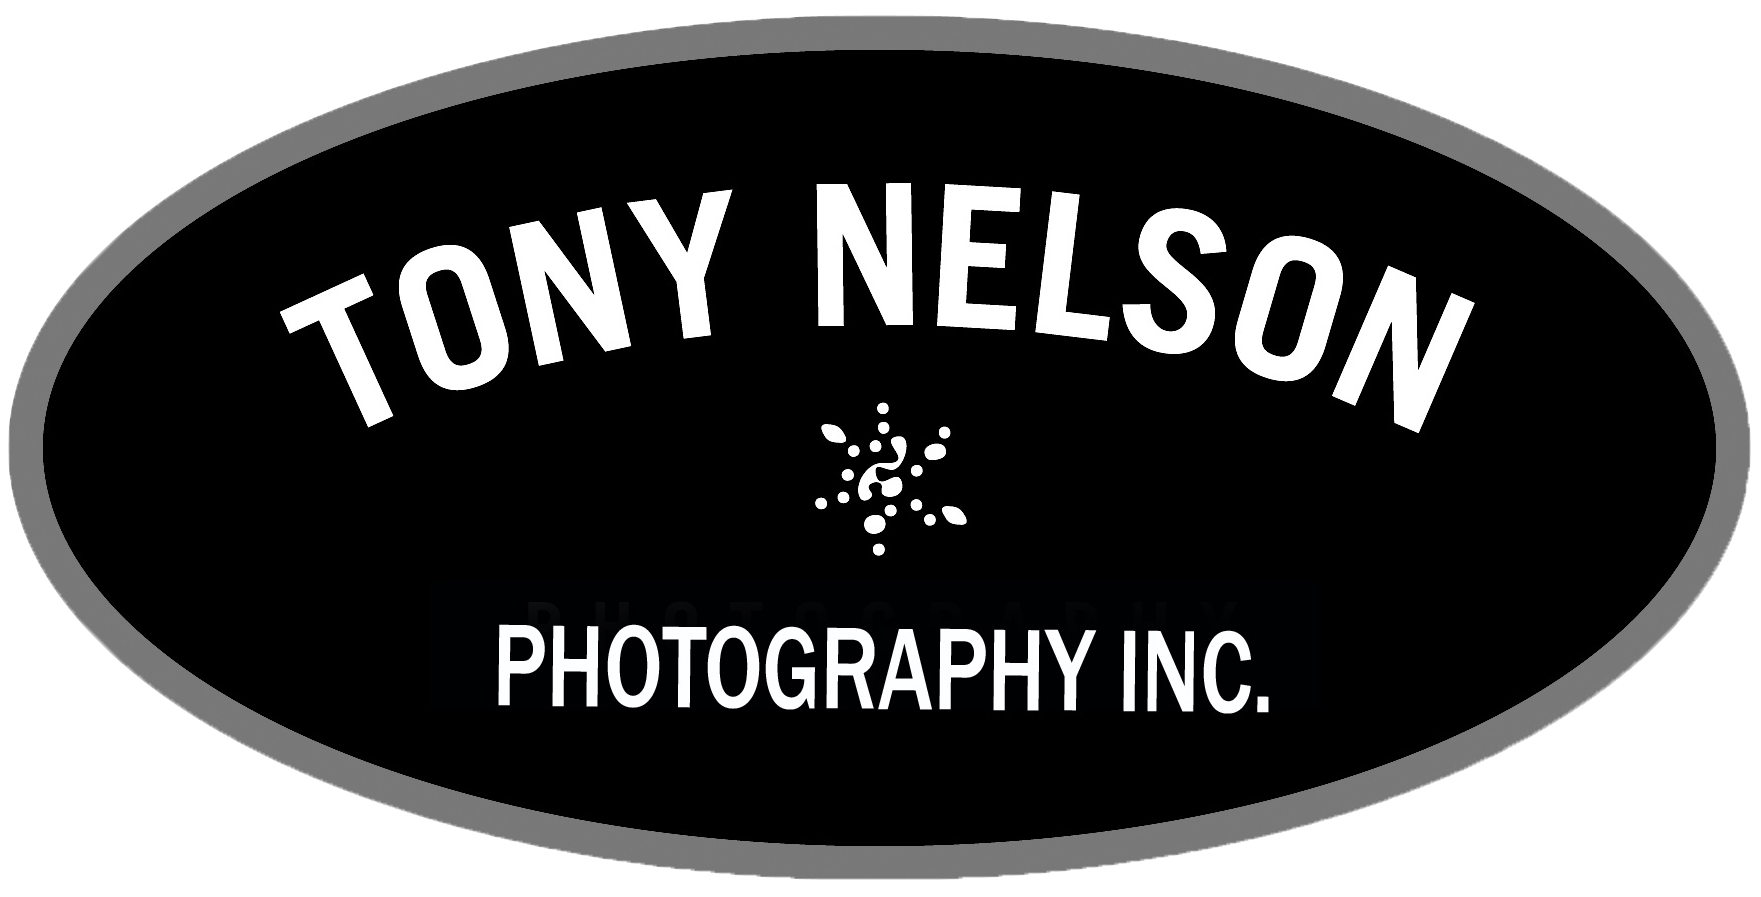 Tony Nelson Photography